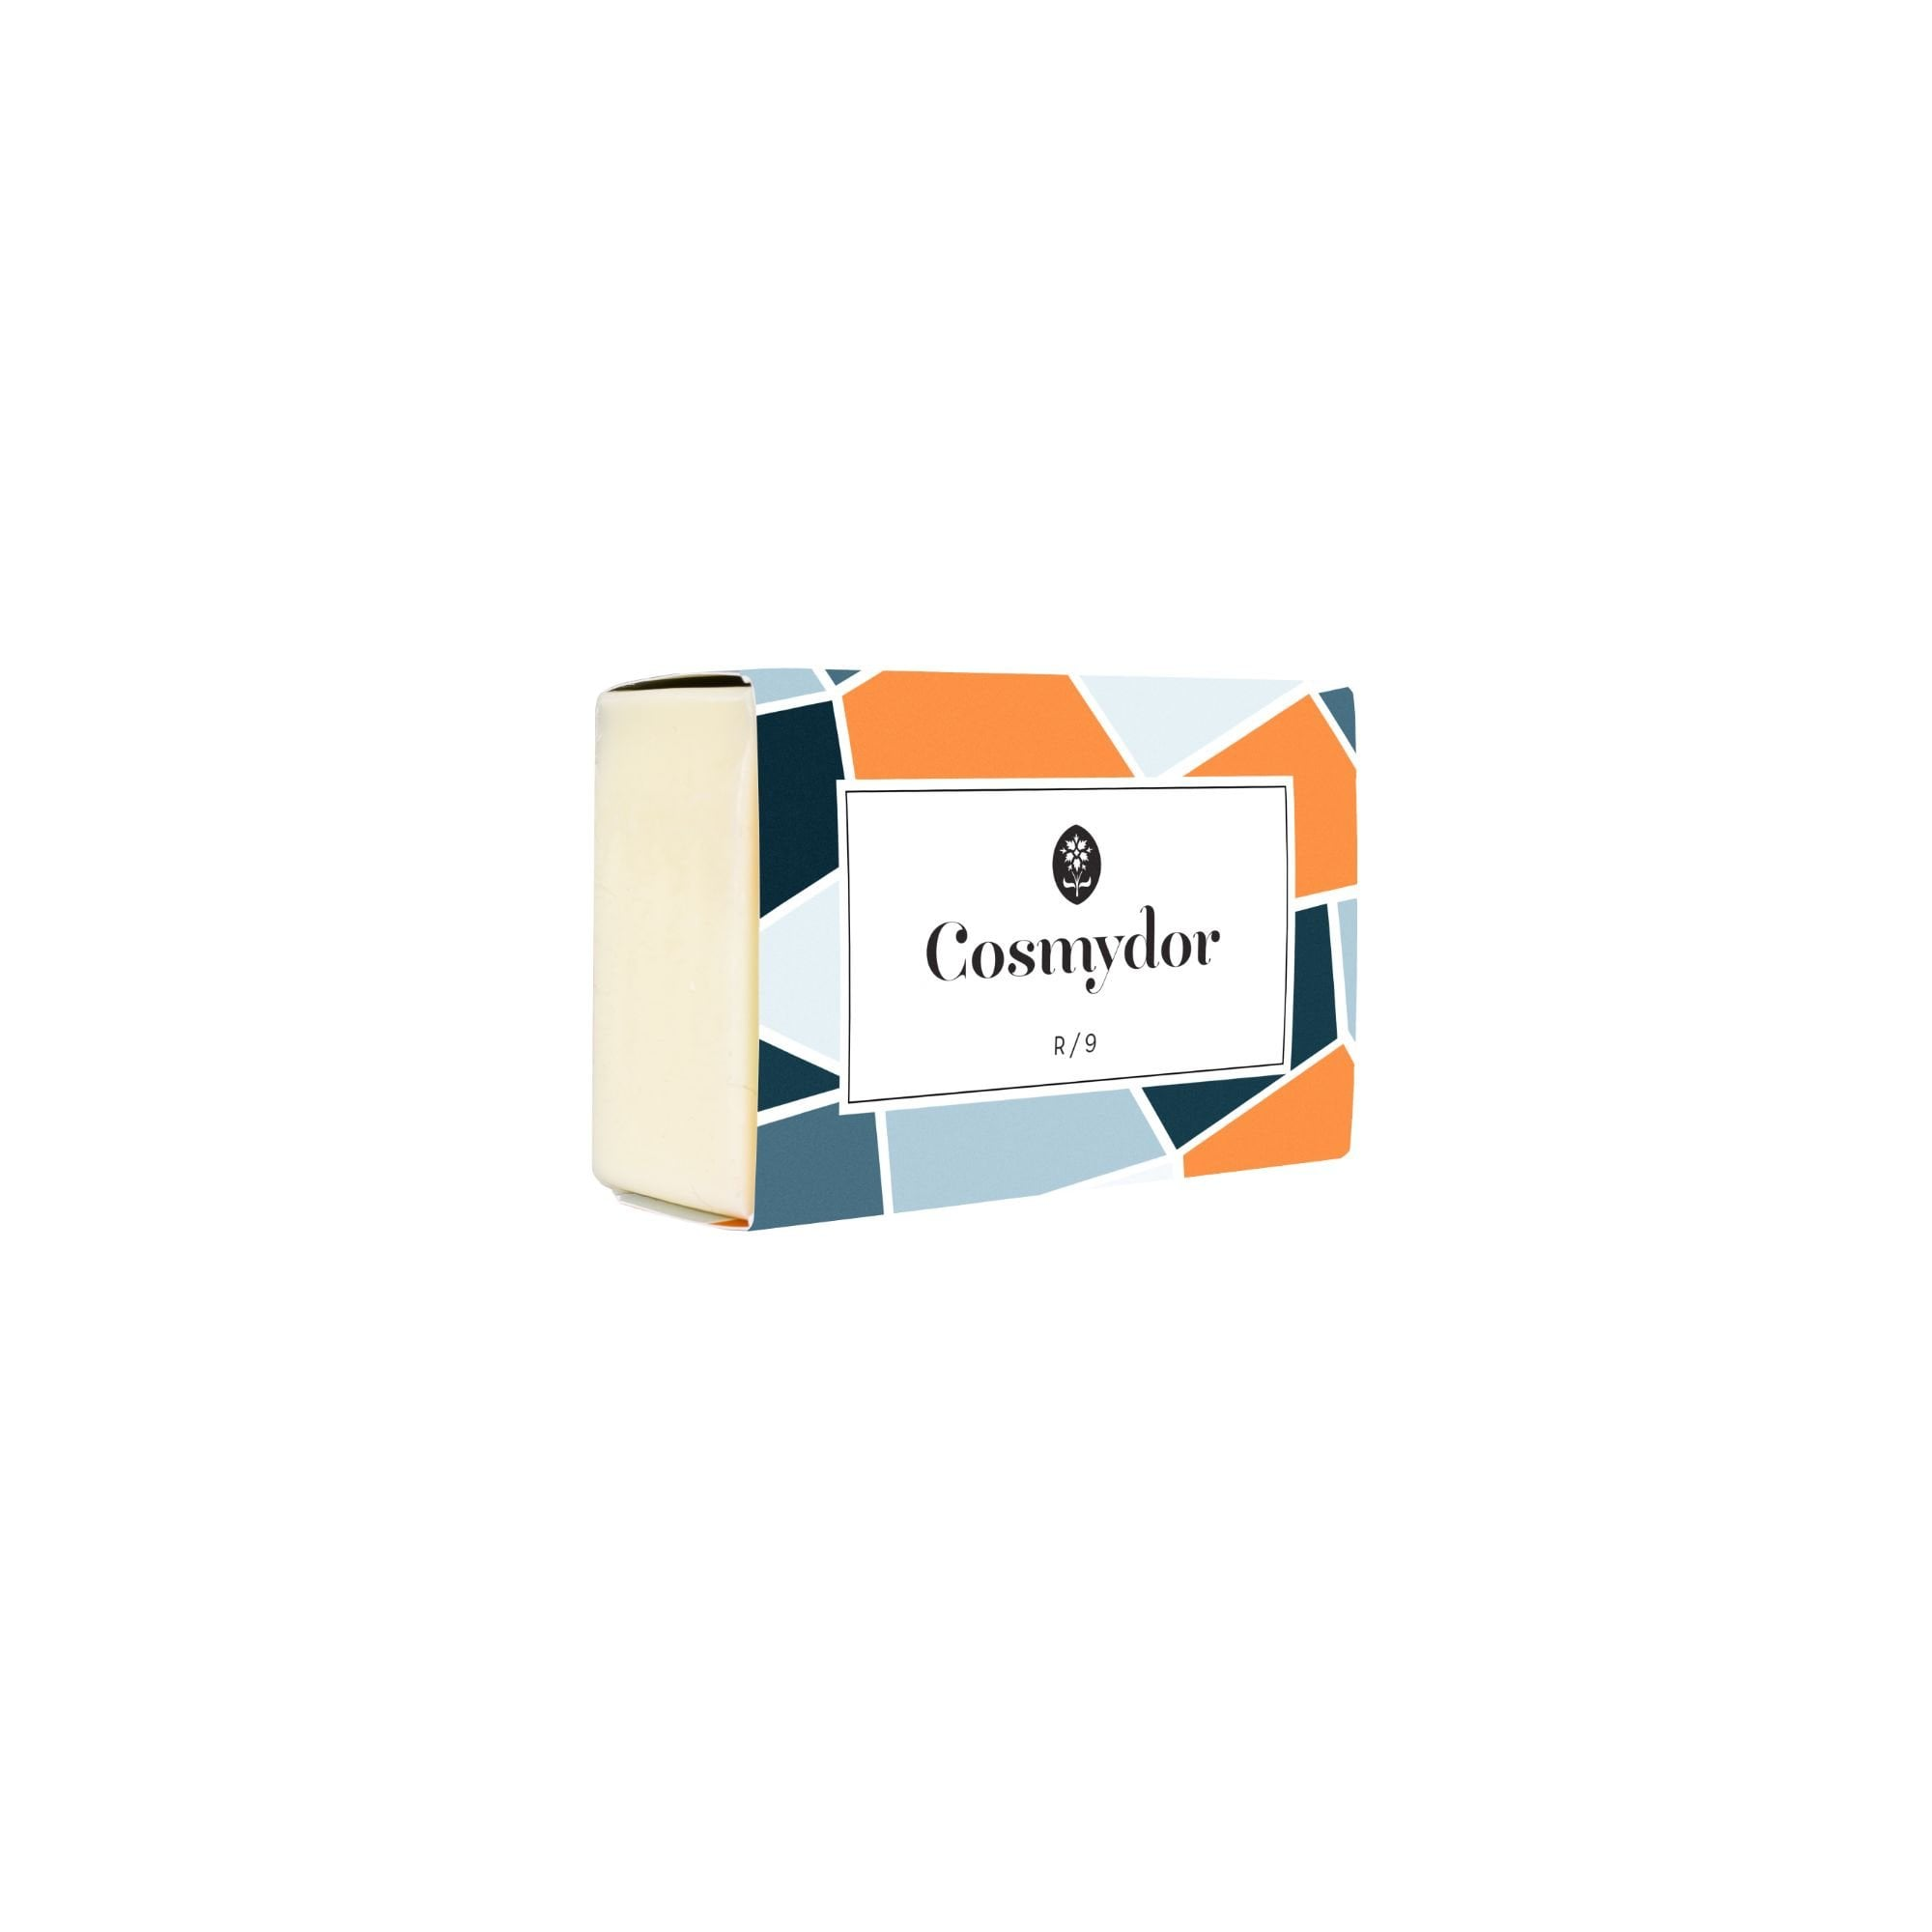 Cosmydor Handcrafter Soap With Hemp Lavender Oil Stanwells